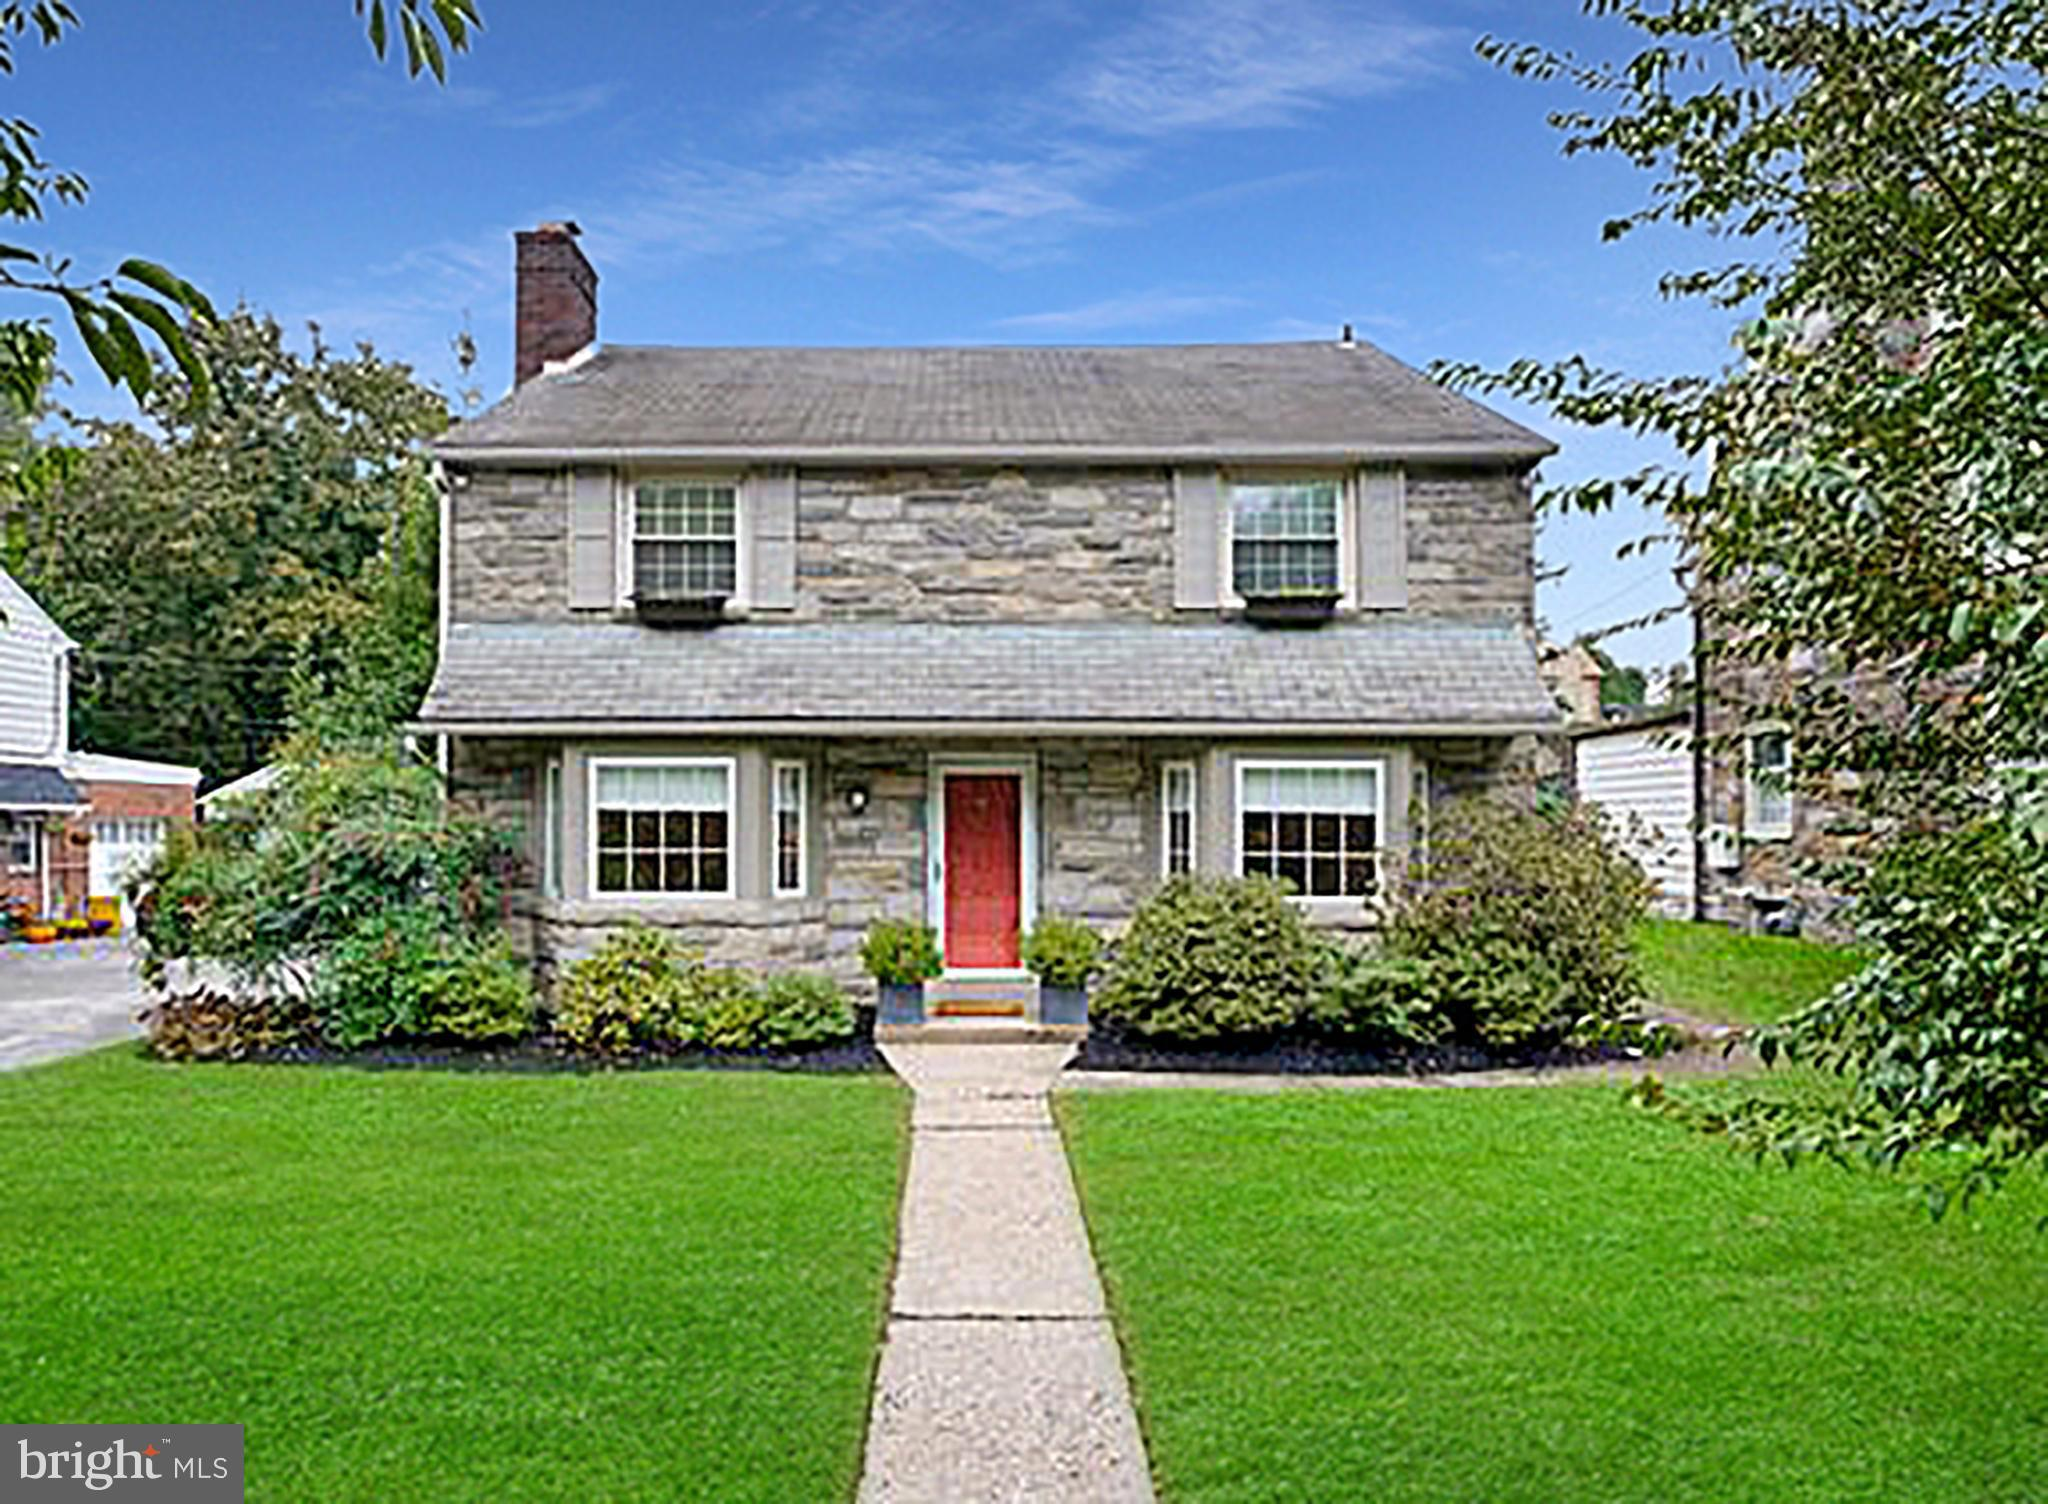 This move-in ready Stone and Brick, Center-hall Colonial is filled with classic features that give it a timeless charm. With 4 bedrooms, 2.5 baths, a beautiful eat-in kitchen, tons of living space, and large, flat rear yard, 28 Overbrook Parkway offers a traditional yet comfortable layout with tons of updated spaces for you and your family to enjoy.   To the left of the entrance is a spacious living room with a wood burning fireplace and hardwood floors. To the right of the entrance you will find a formal dining room with elegant crown and chair rail moldings and a large bay window that lets in a lot of natural light. From the dining room you have easy access to the fully renovated and expanded eat-in kitchen with all white cabinets, state-of-the-art stainless steel appliances, and a charming breakfast nook for you to start your day. The kitchen opens to the family room with custom built-ins and access to the driveway and attached one car garage. A powder room rounds off the first floor.   Upstairs you have the primary bedroom which has a large closet and its own private bathroom. There are also three other bedrooms and a shared hall bath, plus built-in cabinets on the second floor landing that provide tons of convenient storage space.   The finished lower level has enough room for a second family room, exercise room, or whatever fits your familys needs, and even more storage space.    Outside you will also find an ample brick patio and a large, flat, and private backyard with enough room to run around with the kids. All this near award-winning Lower Merion Schools, including an elementary school within walking distance.